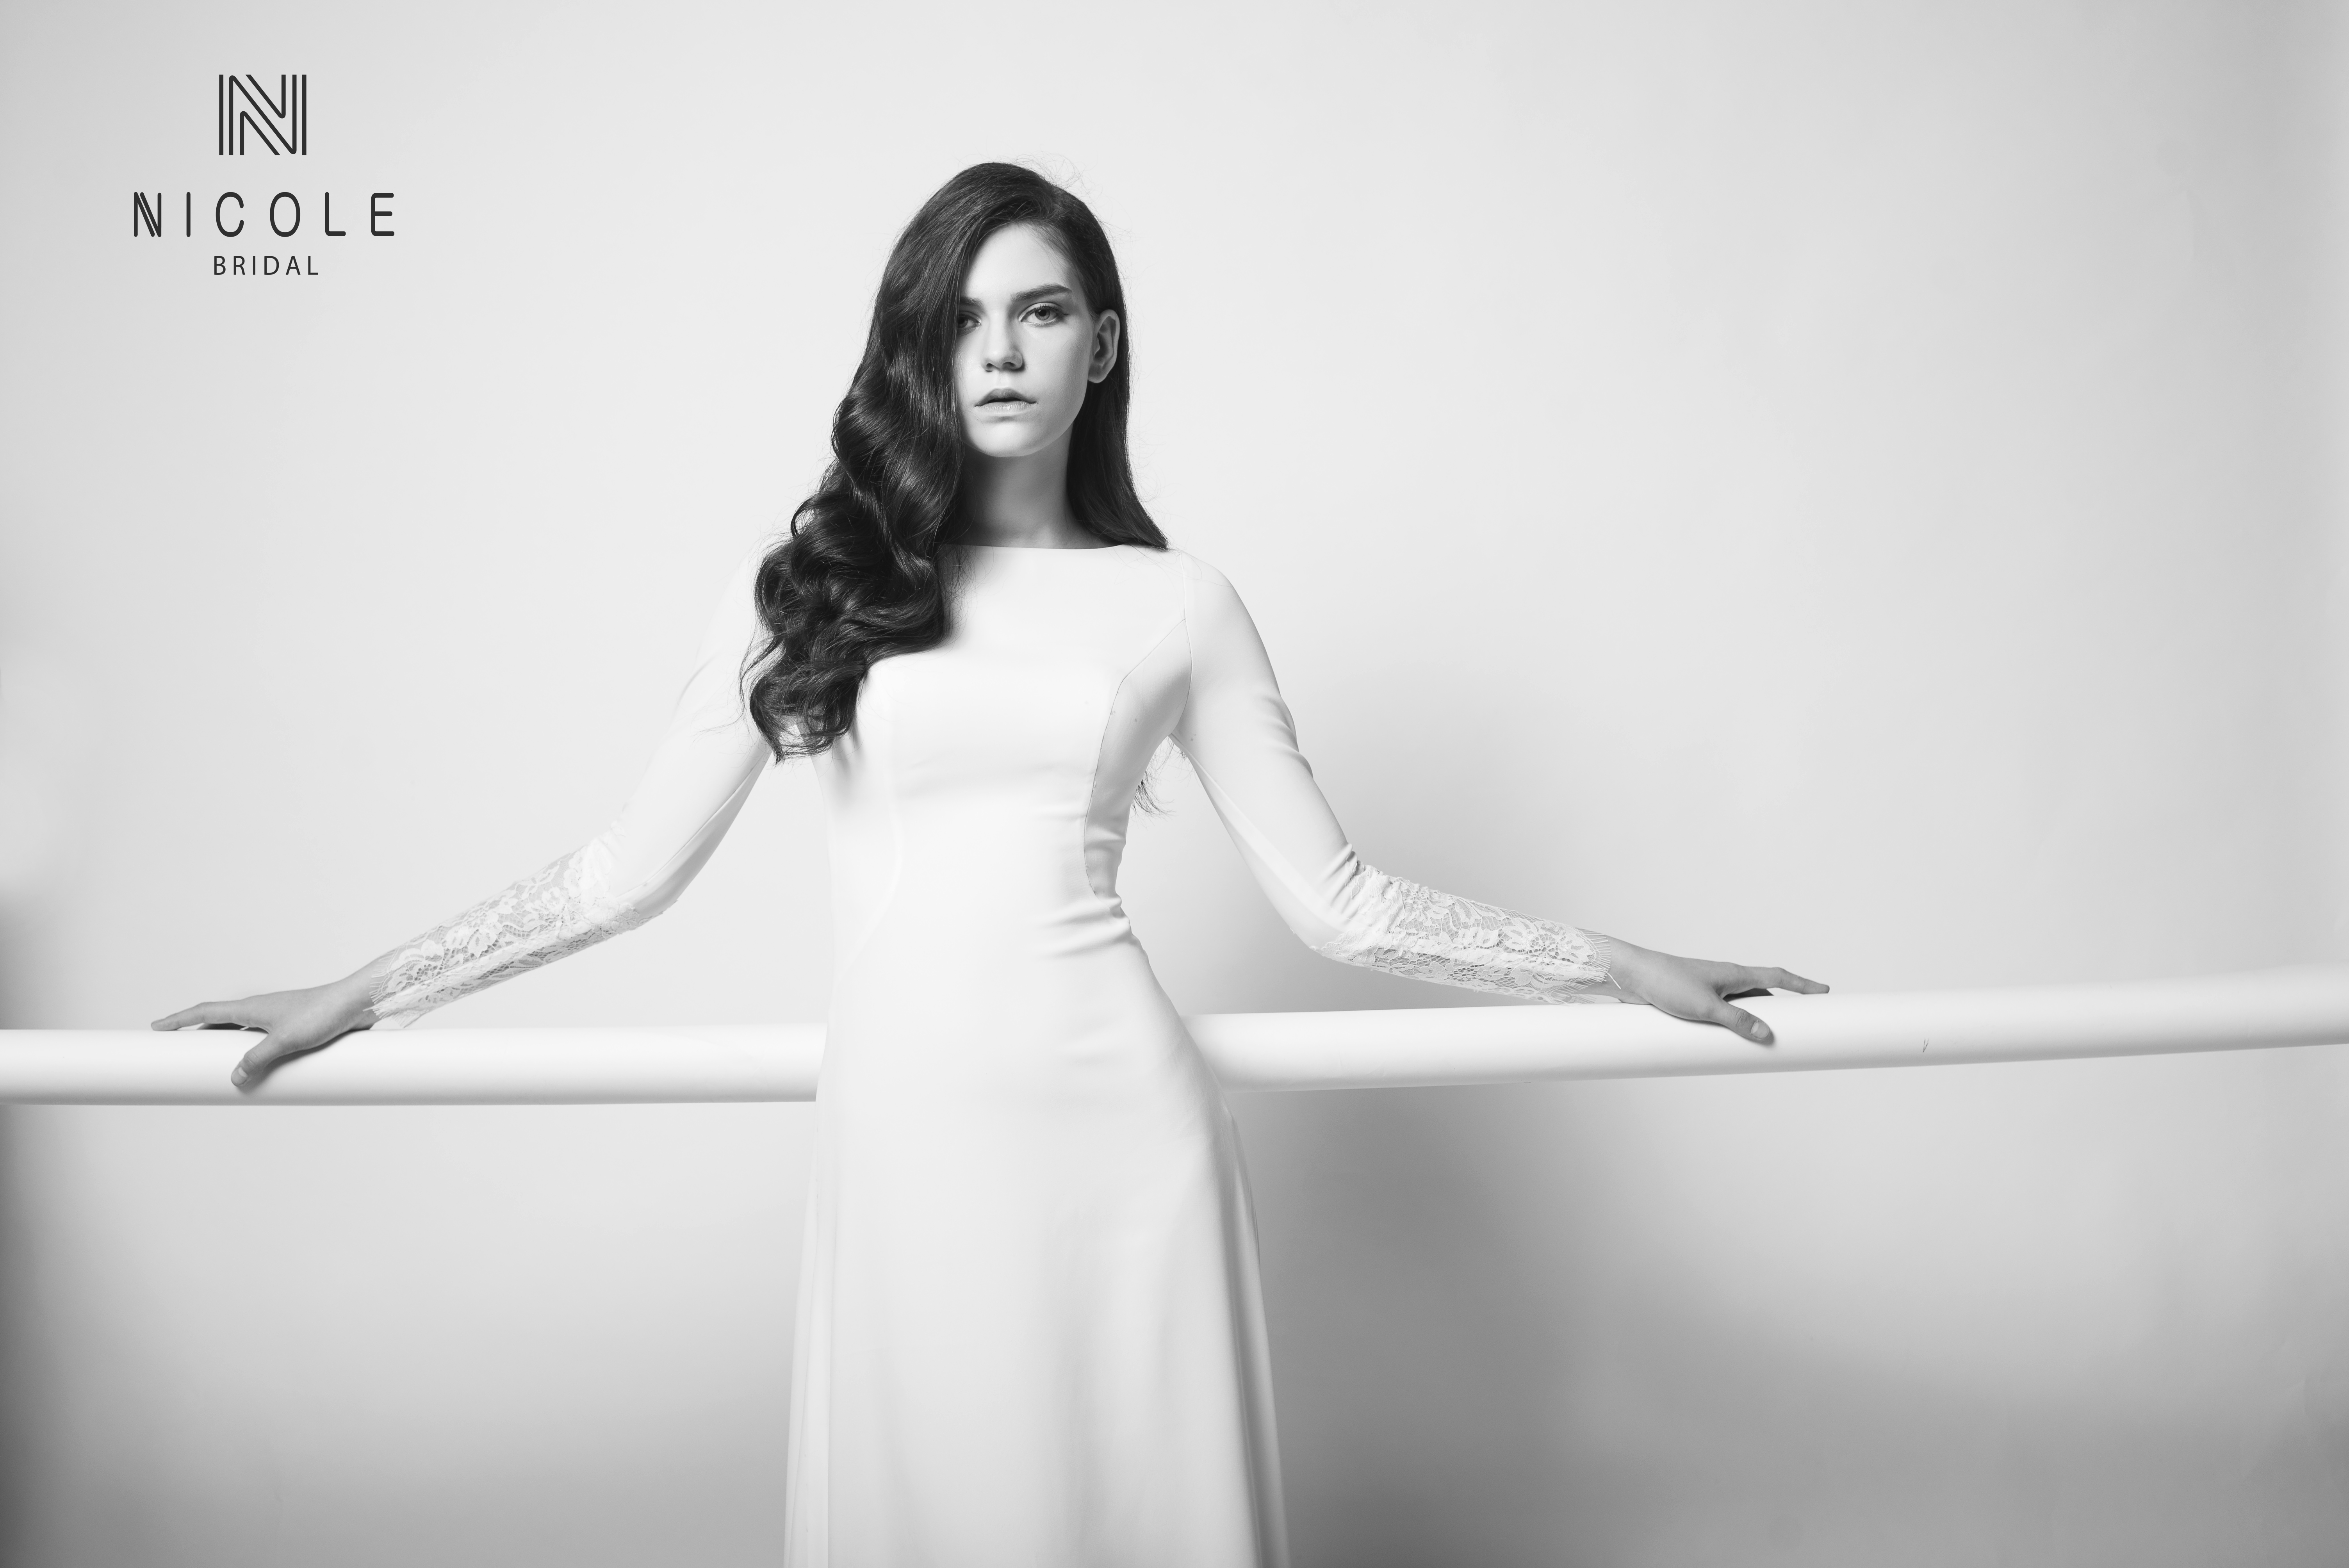 The Nature Collection by Nicole Bridal